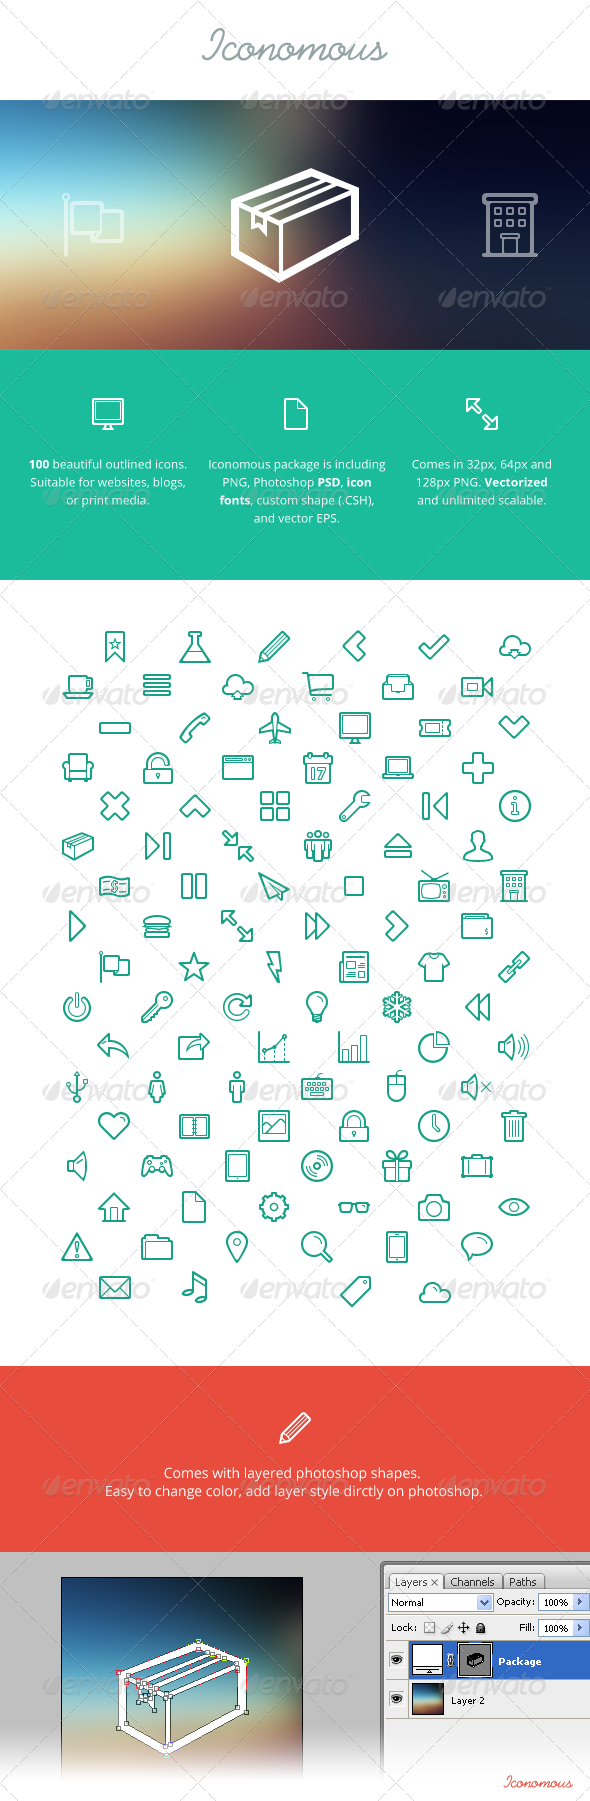 Iconomous - 100 Outlined Icons - Web Icons